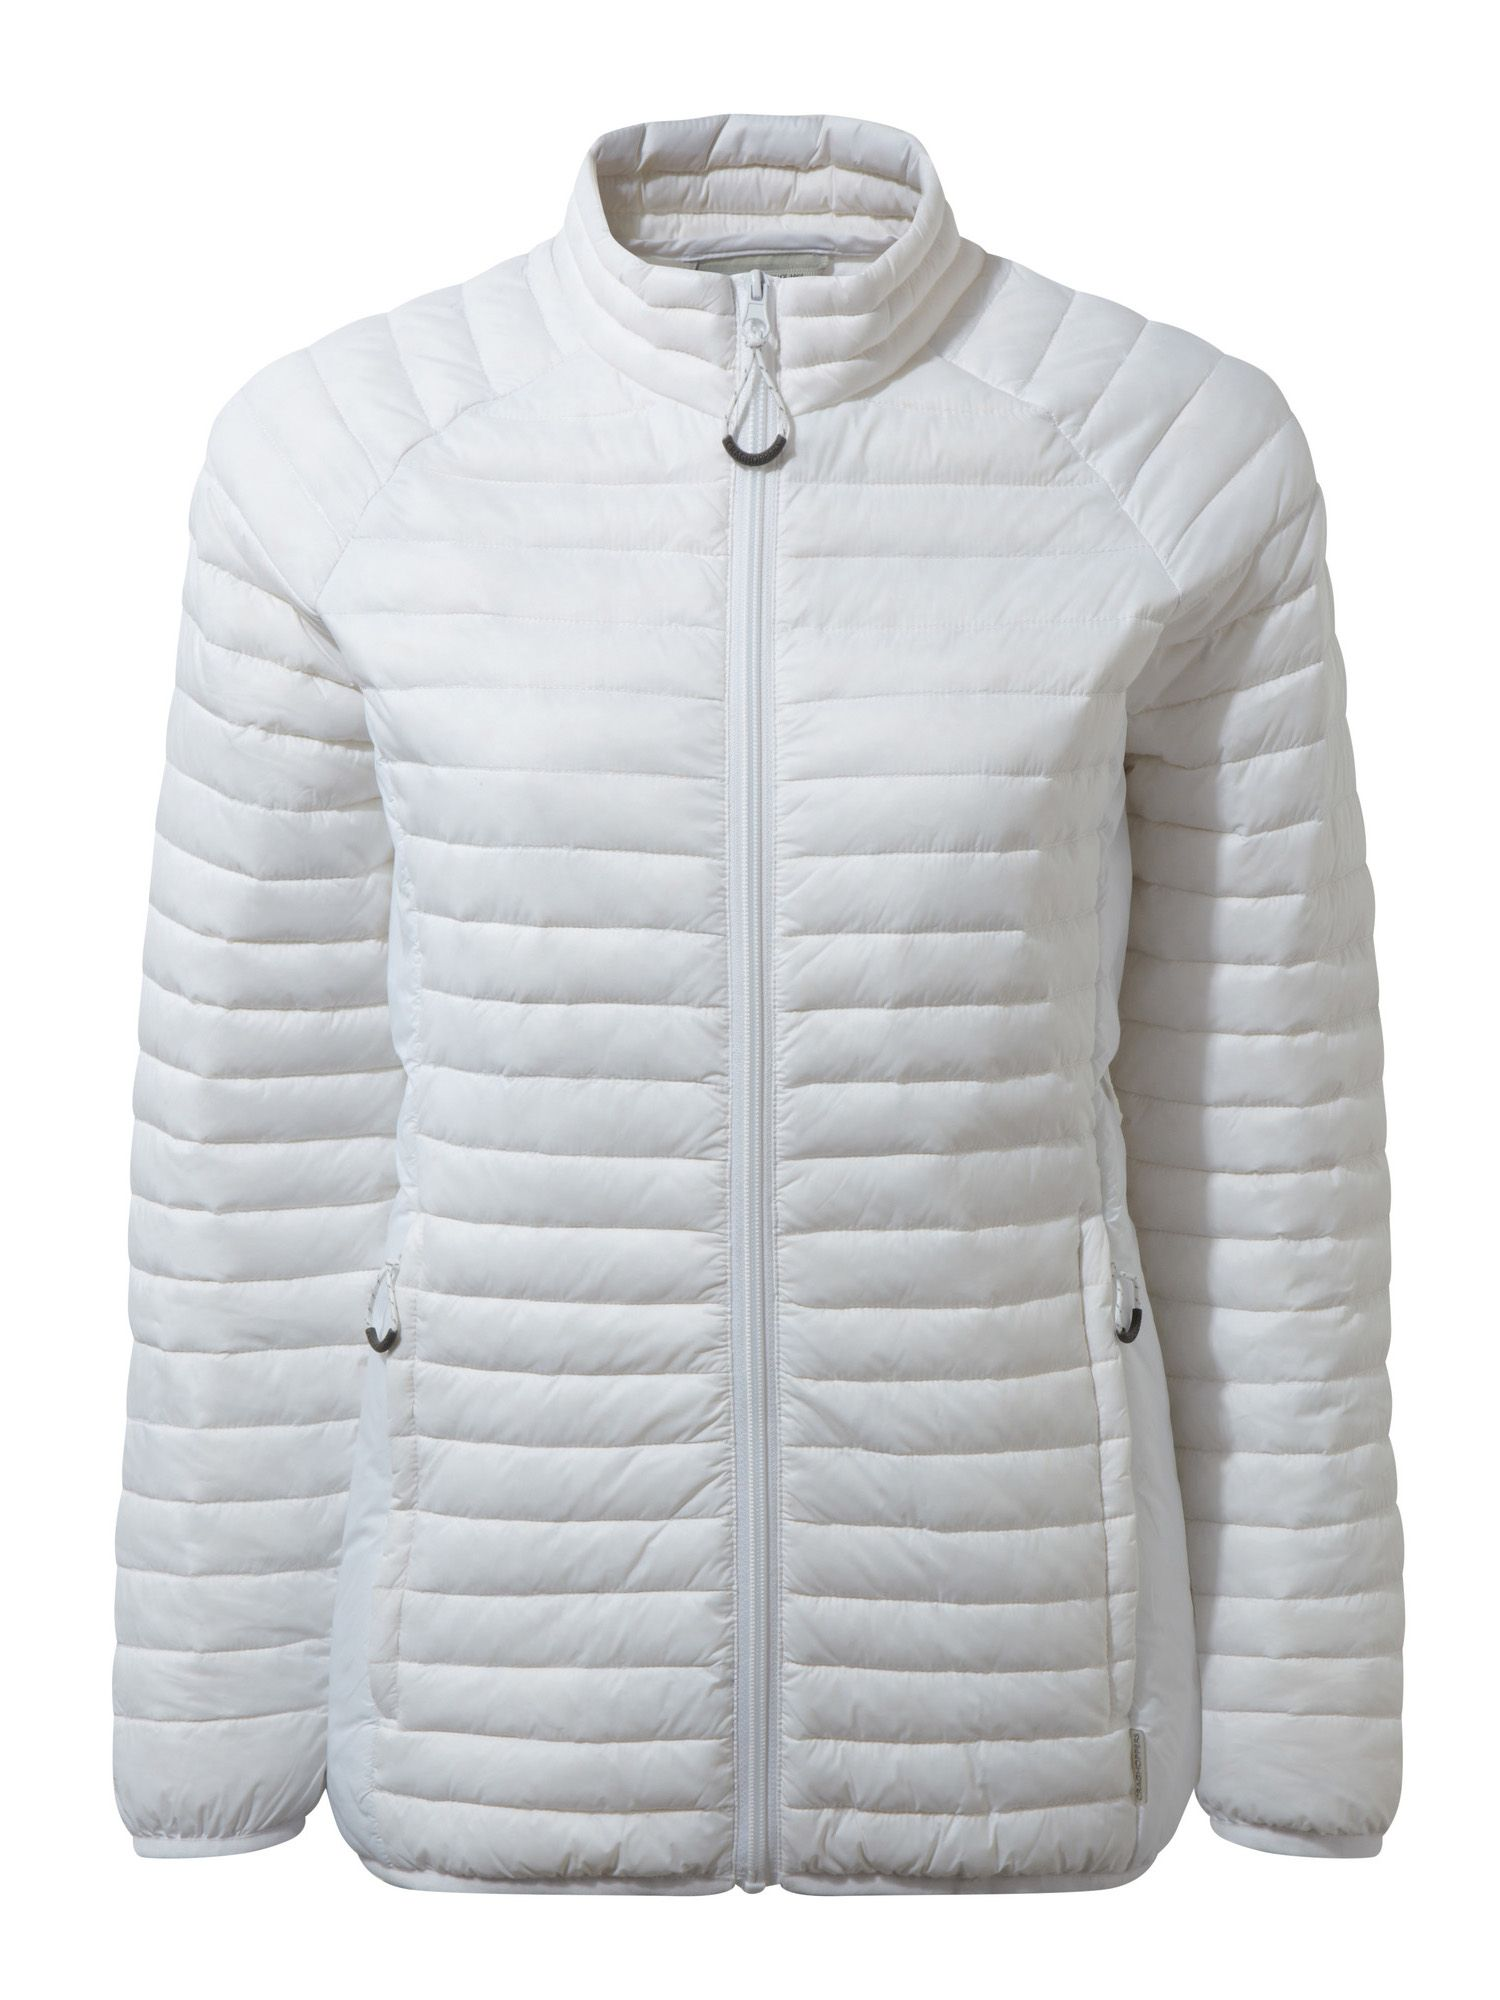 Craghoppers Venta Lite Insulating Jacket, White